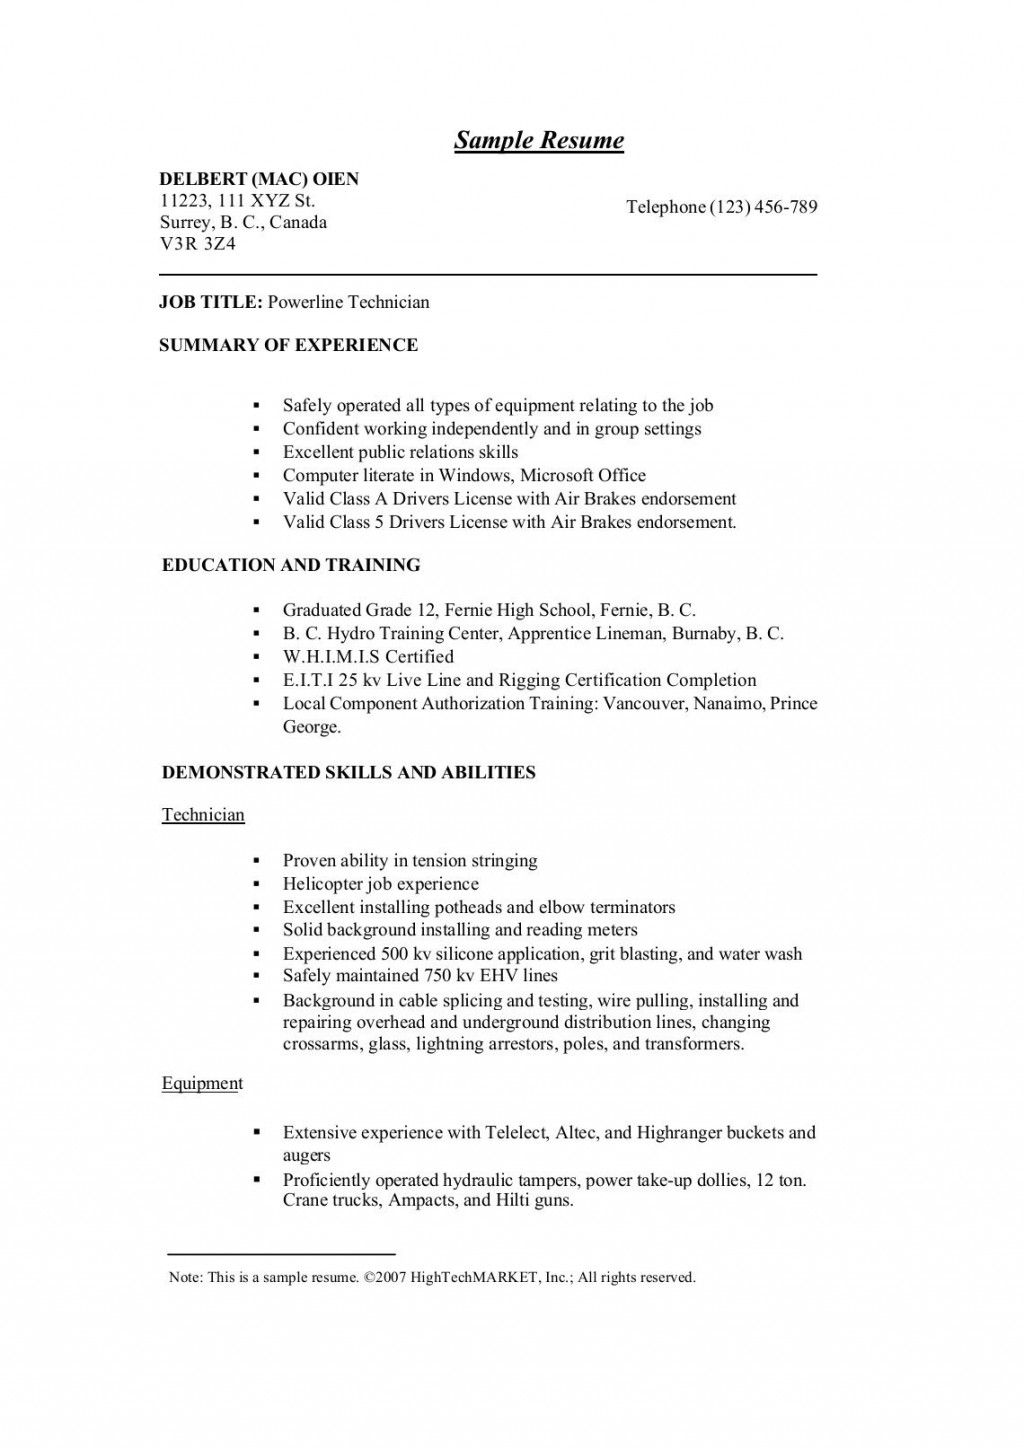 004 Ut Austin Essays Essay Example Sample Resume Application For Powerline Frightening That Worked Word Limit Large